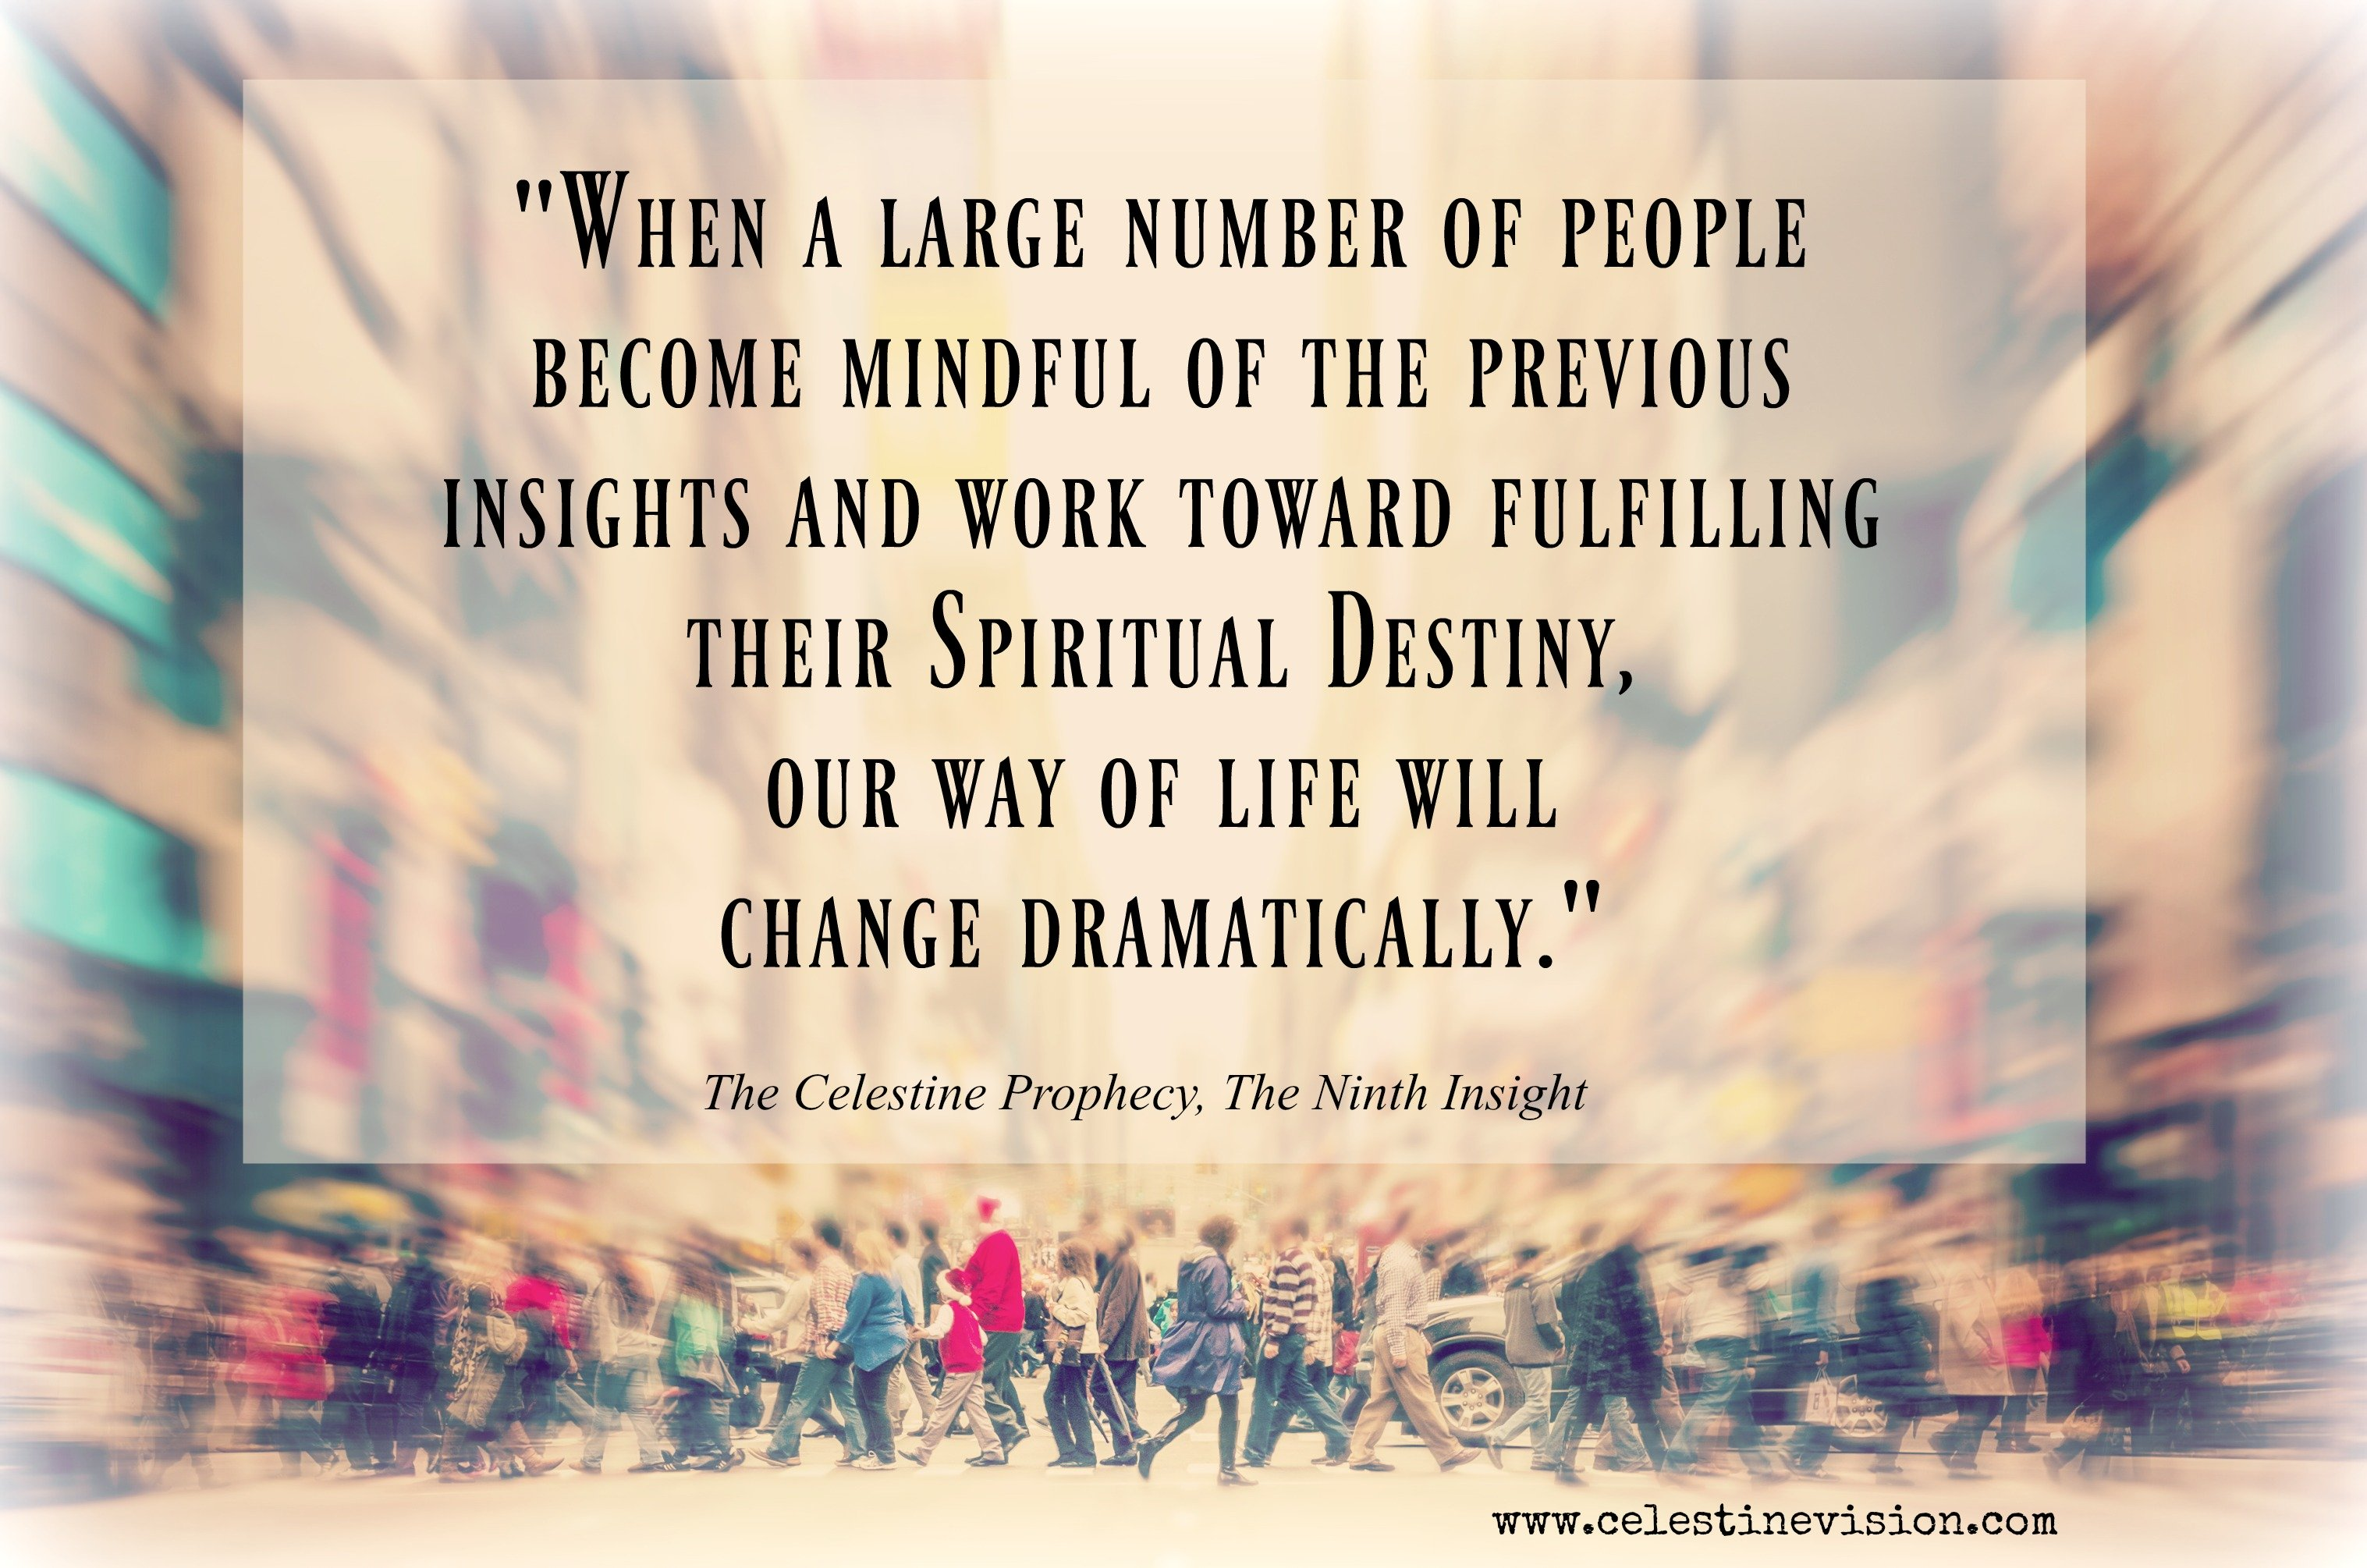 Celestine - When a large number of people BeCome MindFull of the previous INsights nd Work toward Full-Filling their Spiritual Destiny, OUR Way of Life WILL Change Dramatically. The 9th INsight